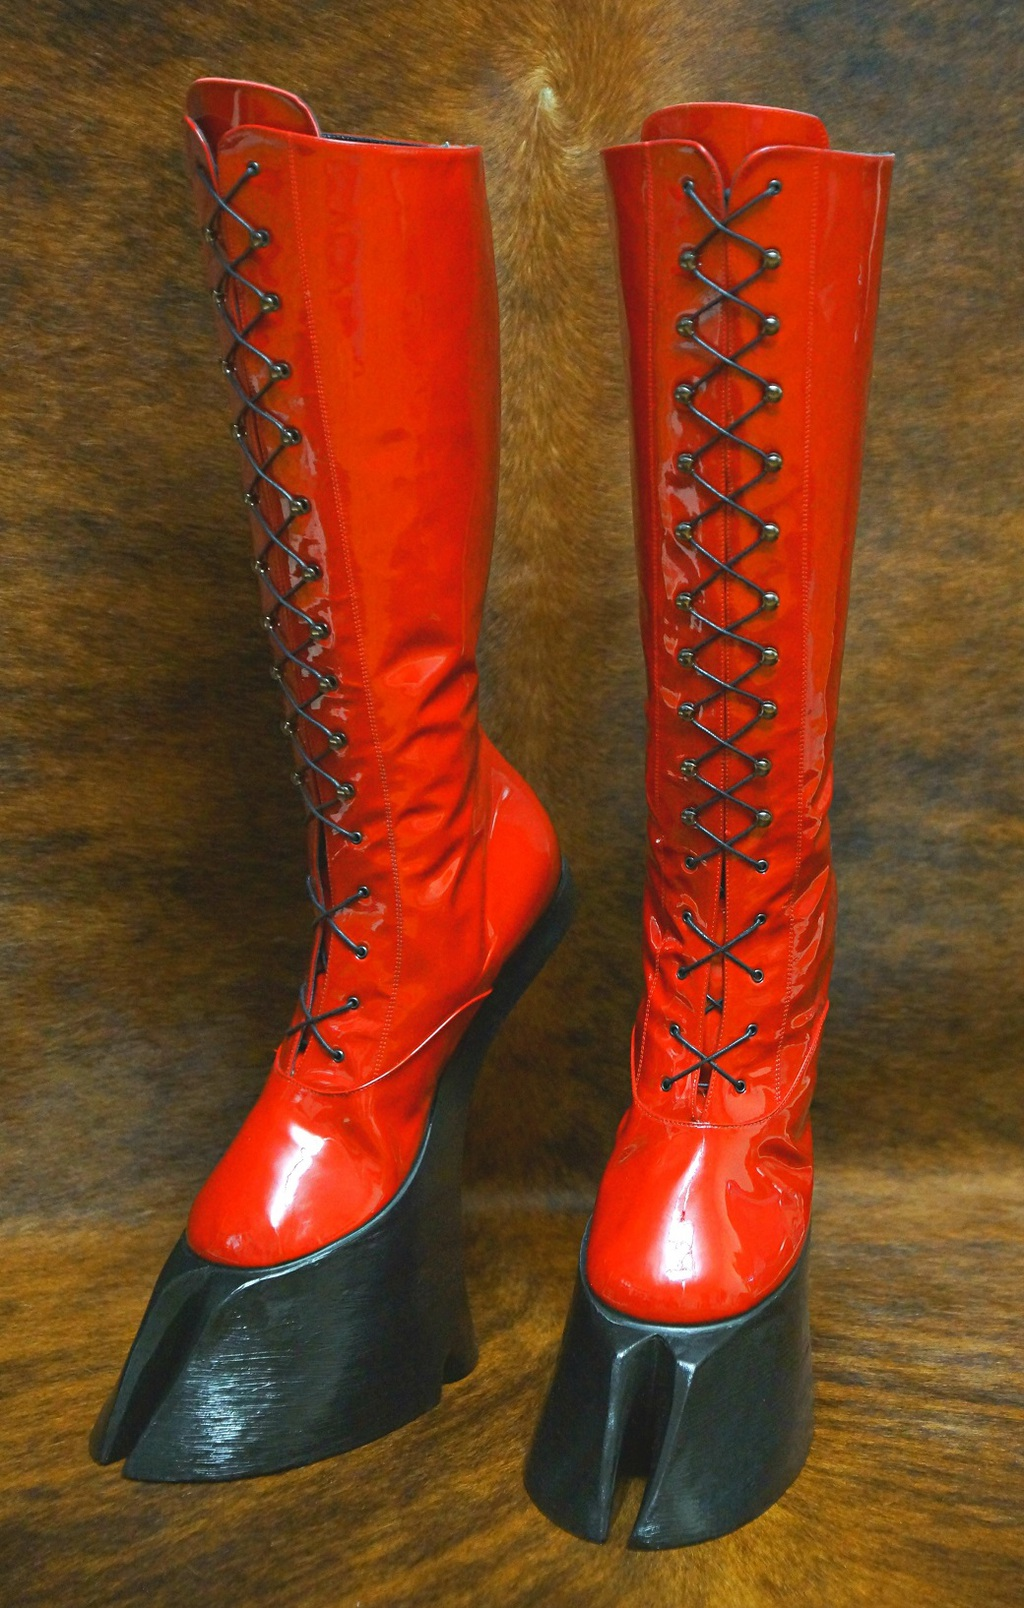 The Succubus boots – with cloven hoofs